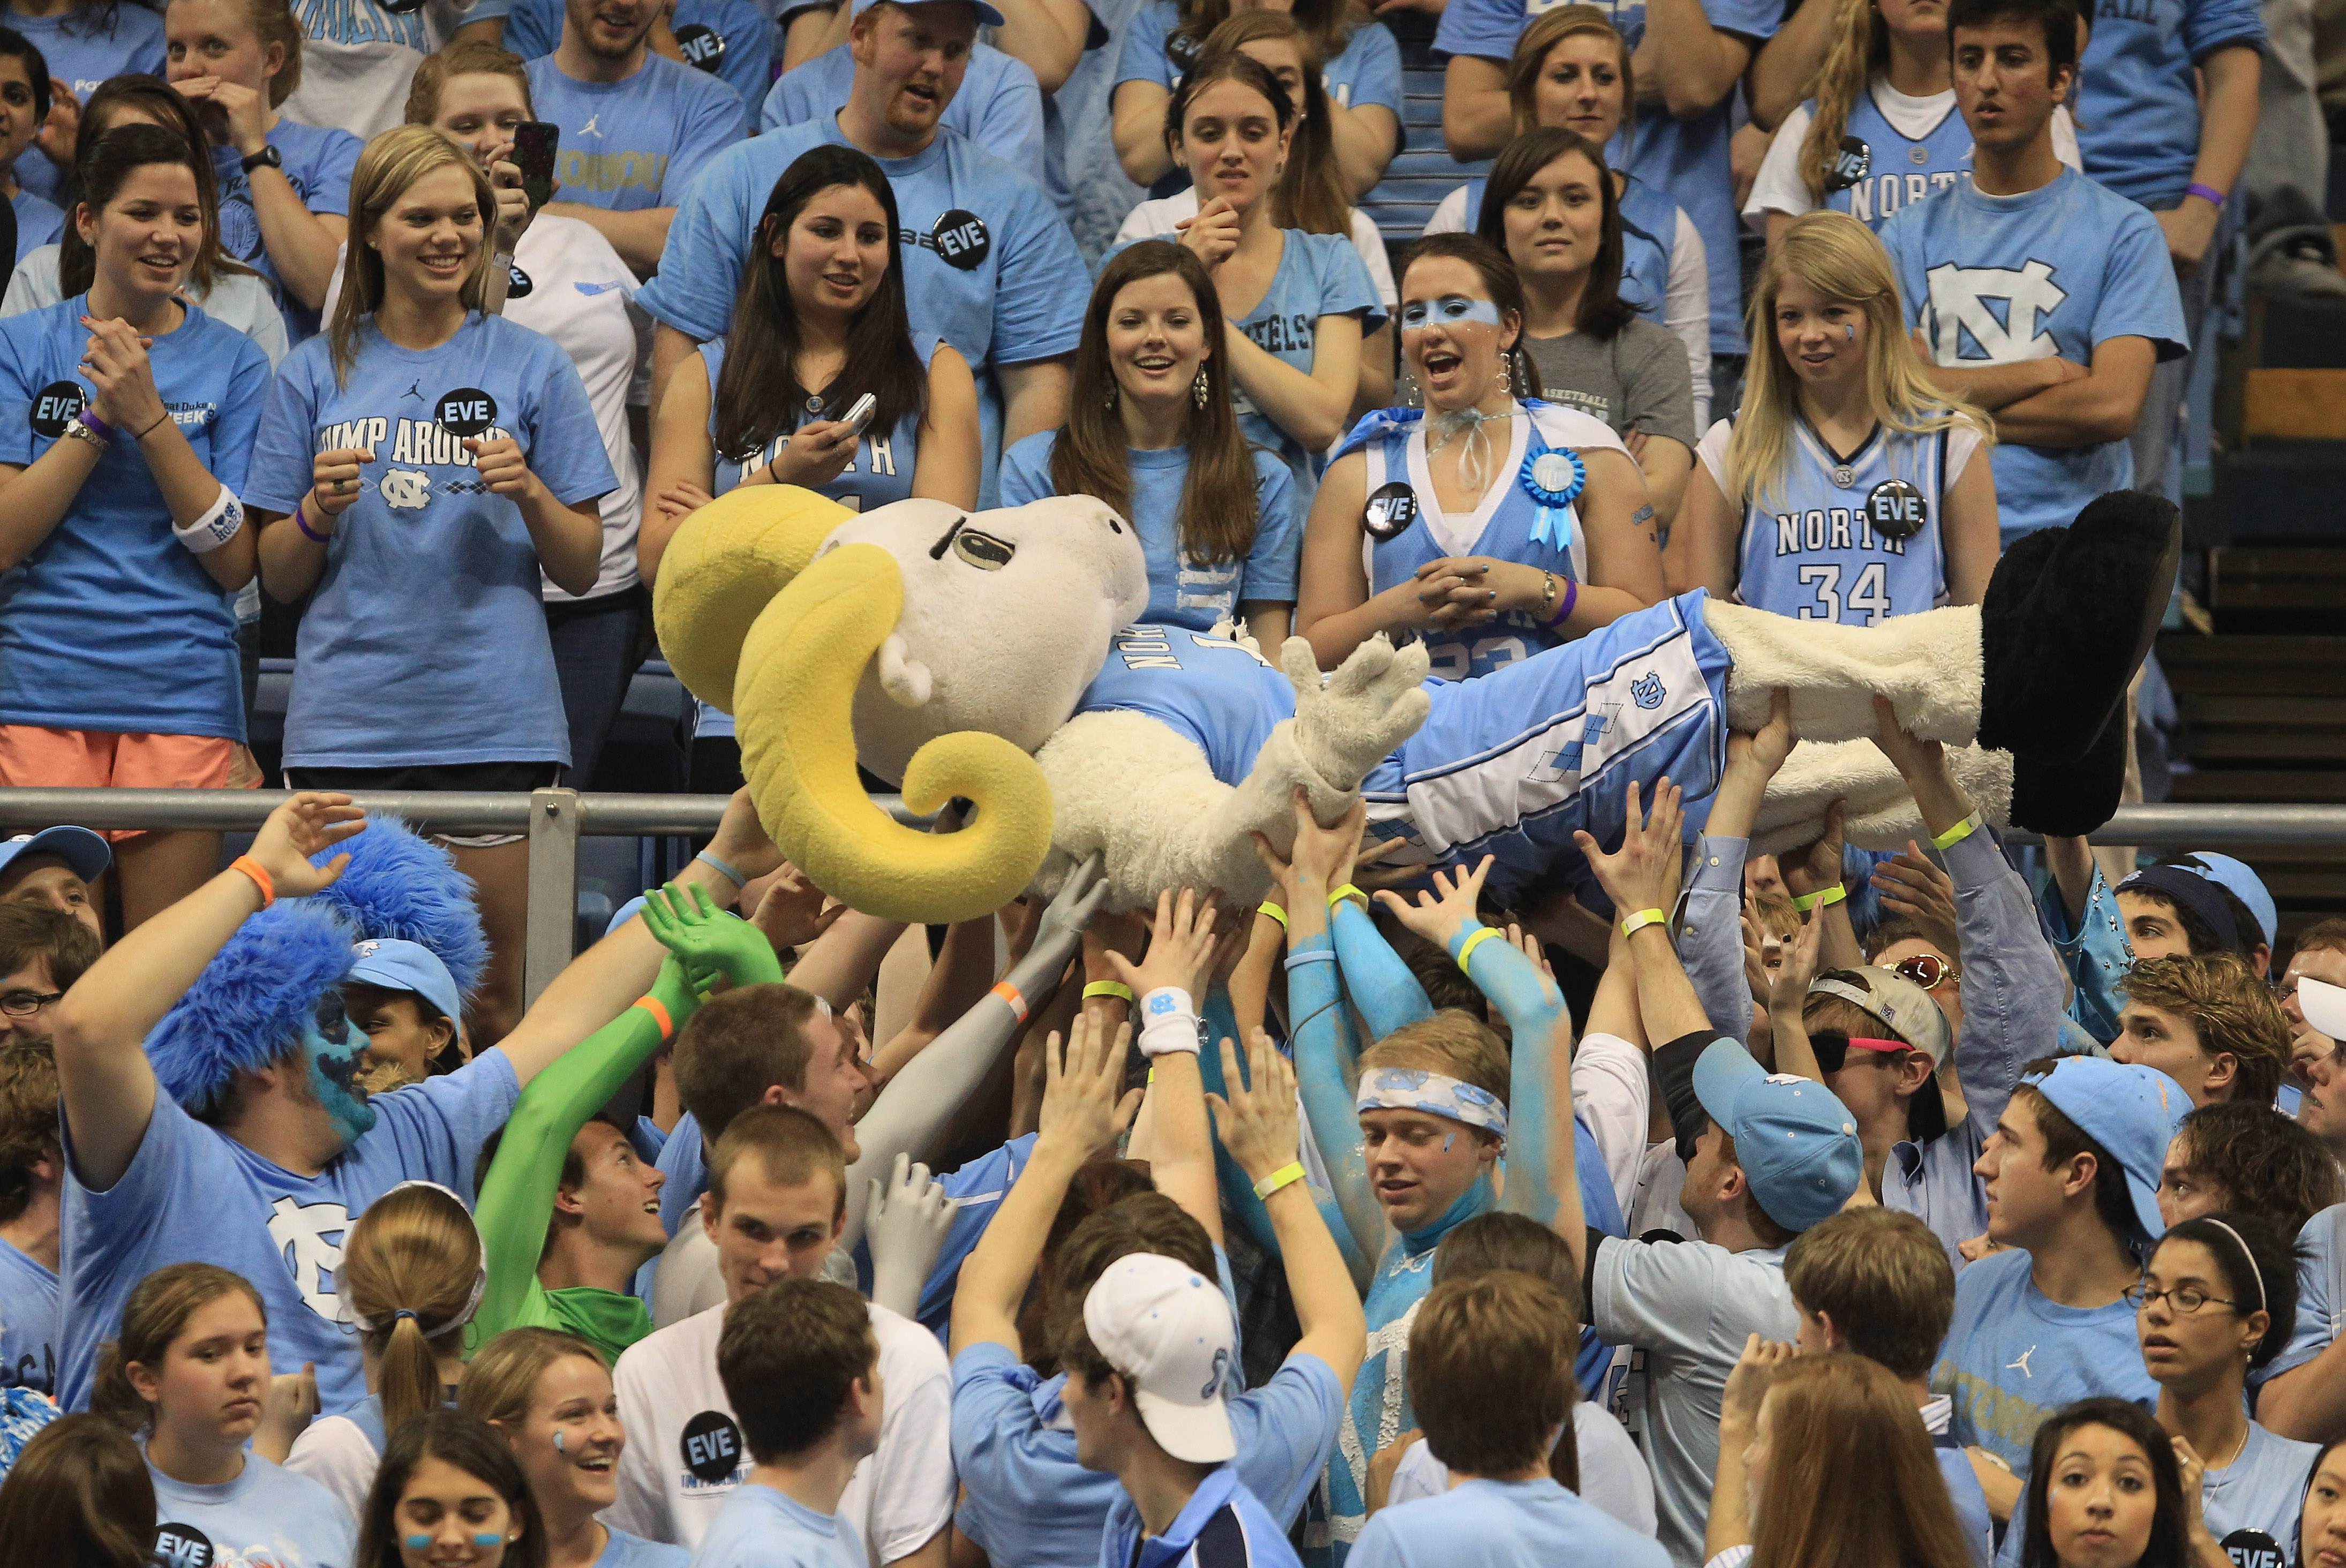 CHAPEL HILL, NC - MARCH 05:  The mascot of the North Carolina Tar Heels crowd surfs during their game against the Duke Blue Devils at the Dean E. Smith Center on March 5, 2011 in Chapel Hill, North Carolina.  (Photo by Streeter Lecka/Getty Images)